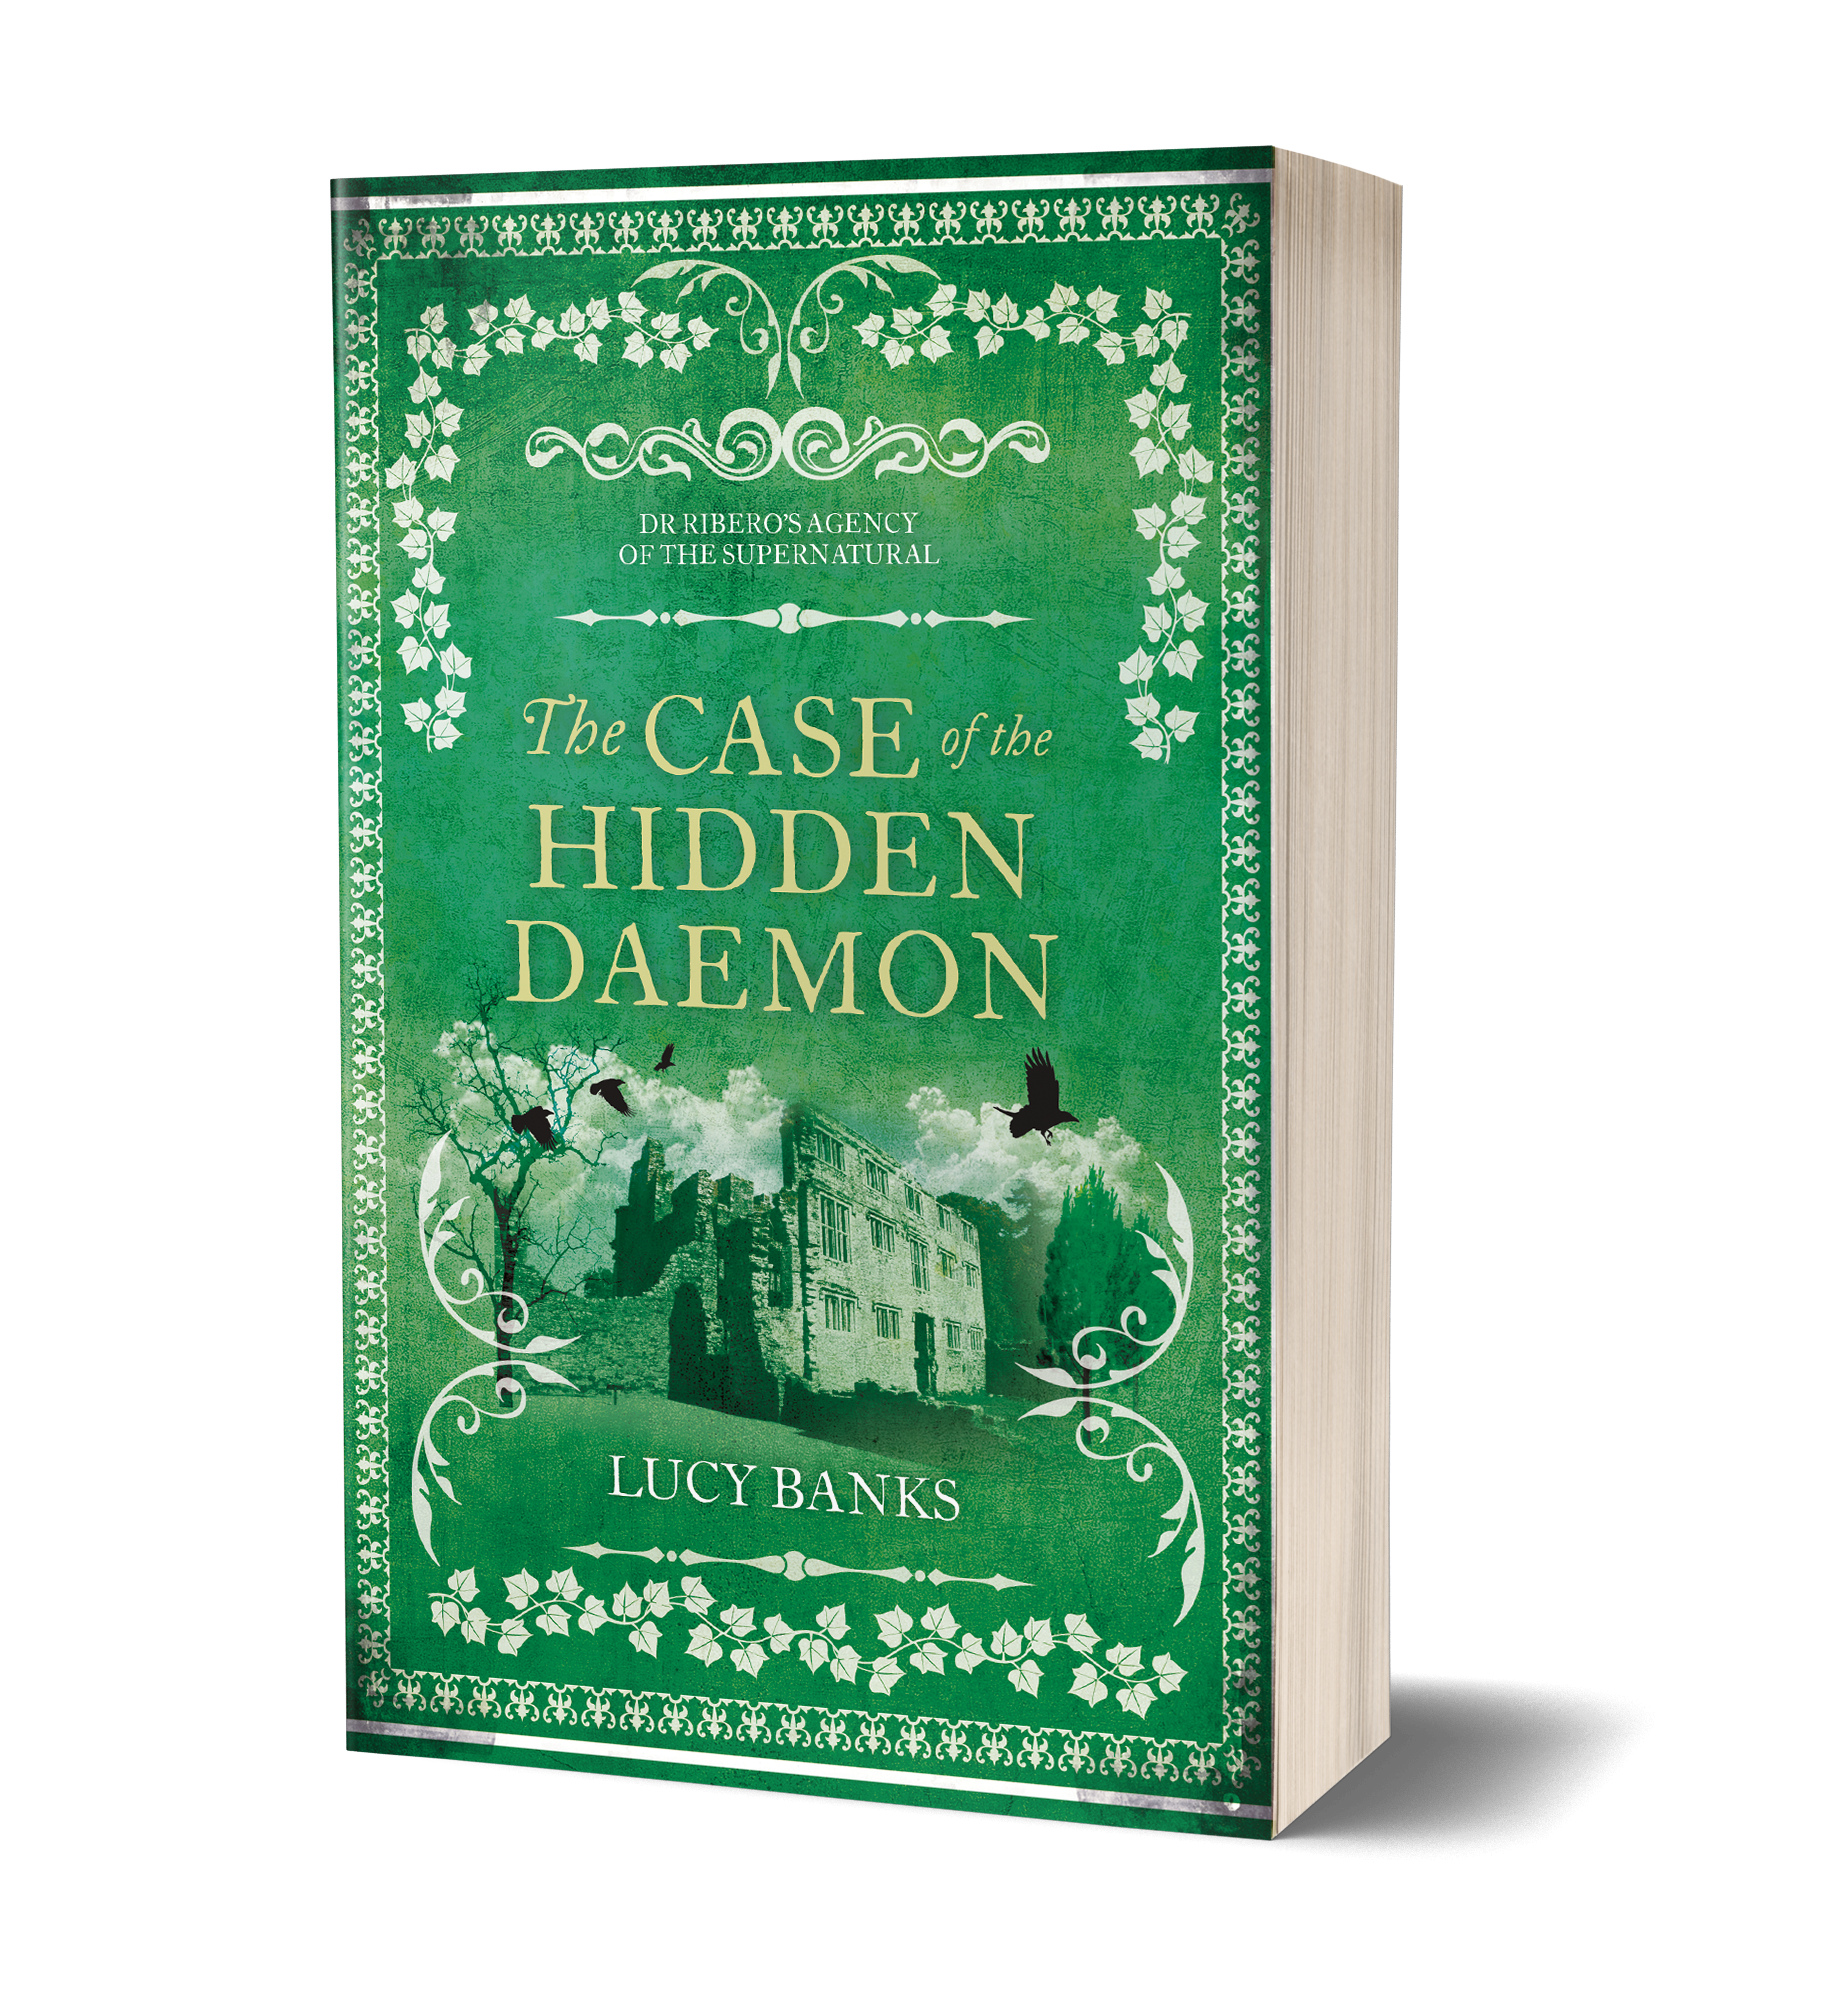 The Case of the Hidden Daemon book cover, green cover, old, decaying manor, abandoned, birds flying, tall hedges